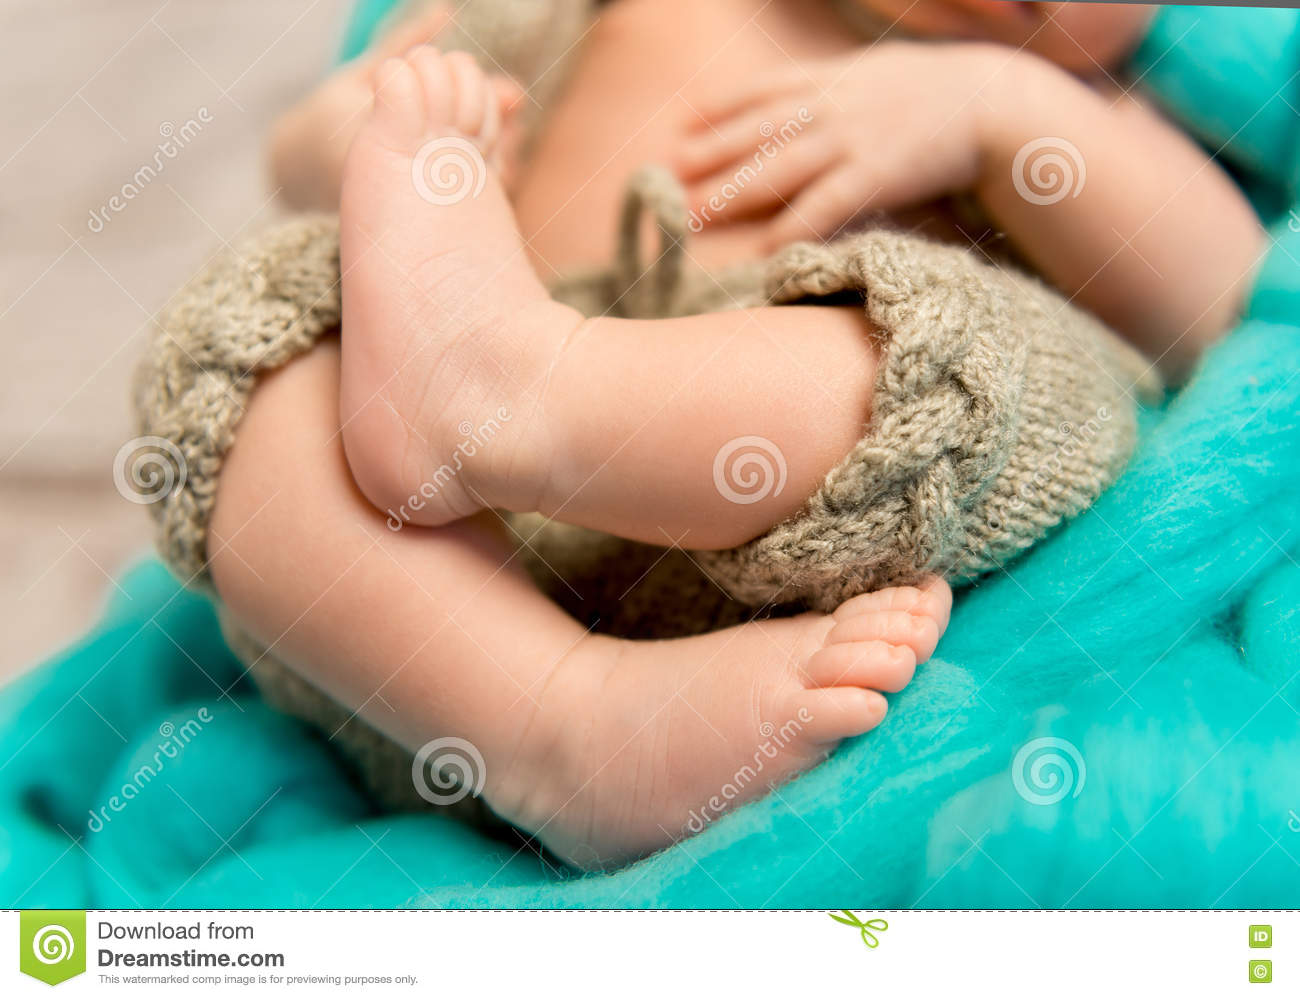 1852533a6 Crossed Legs Of A Newborn Baby Stock Photo - Image of pants